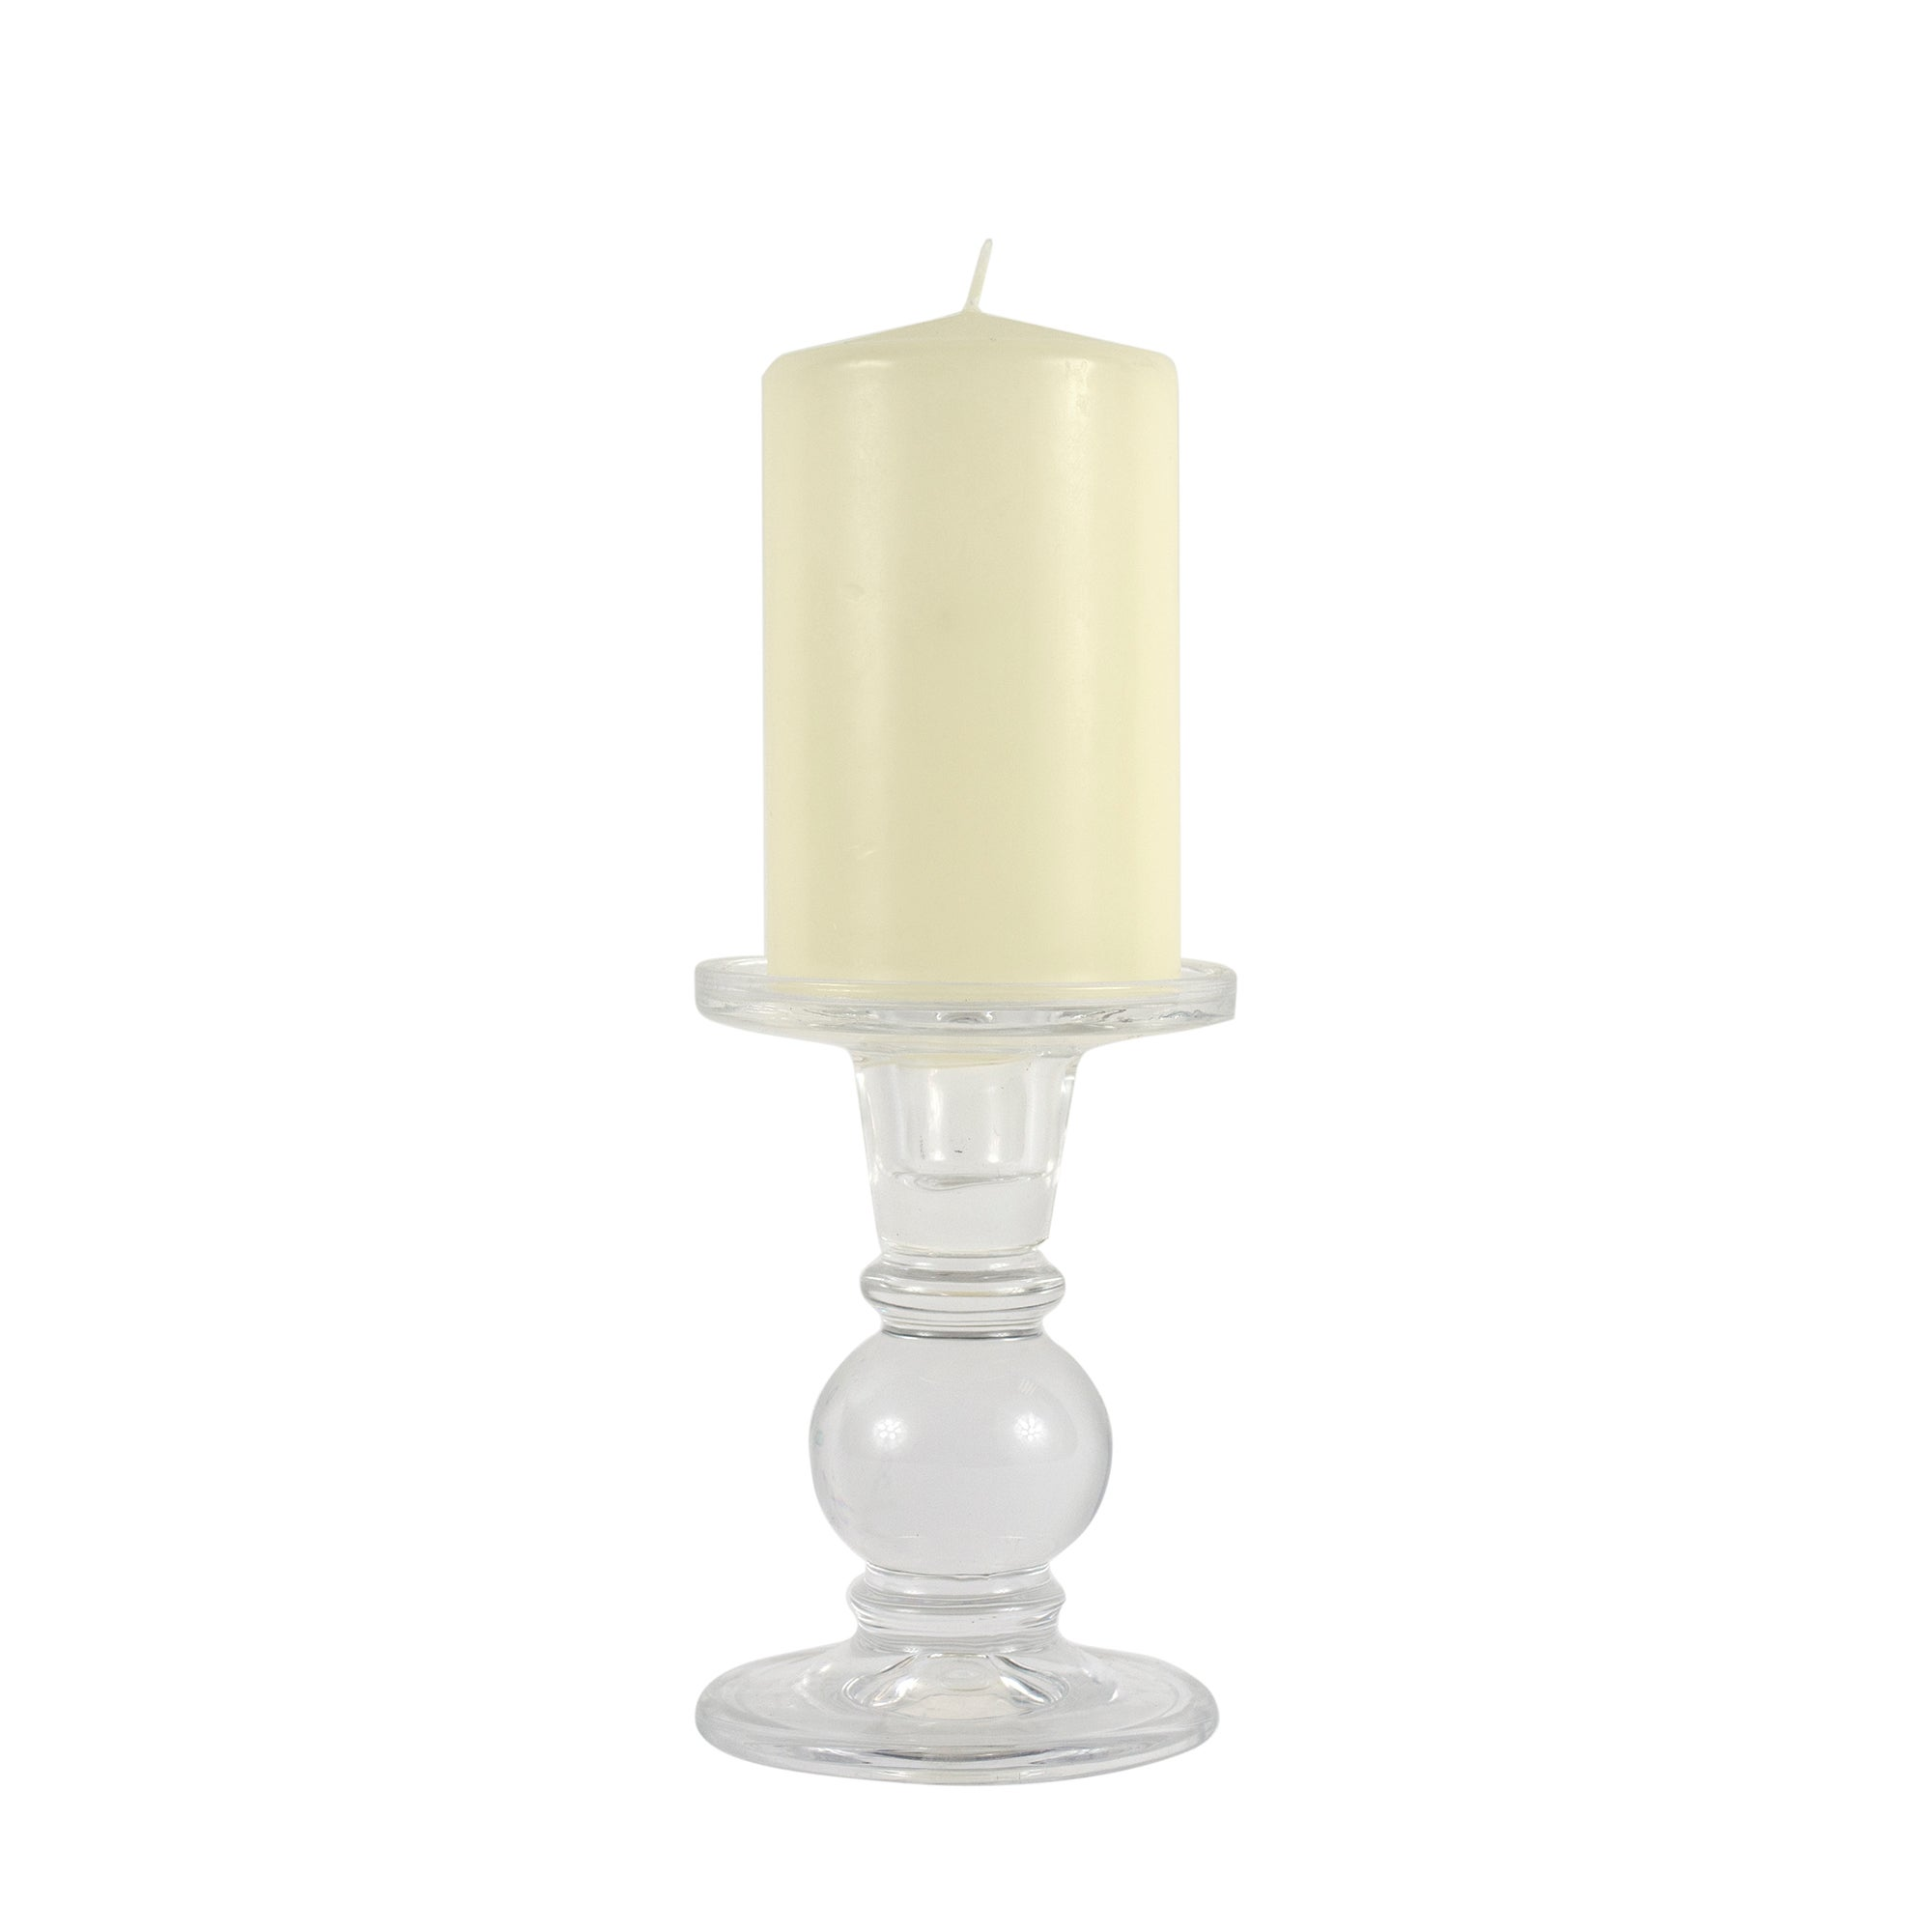 Glass Candle Holder and Pillar Candle